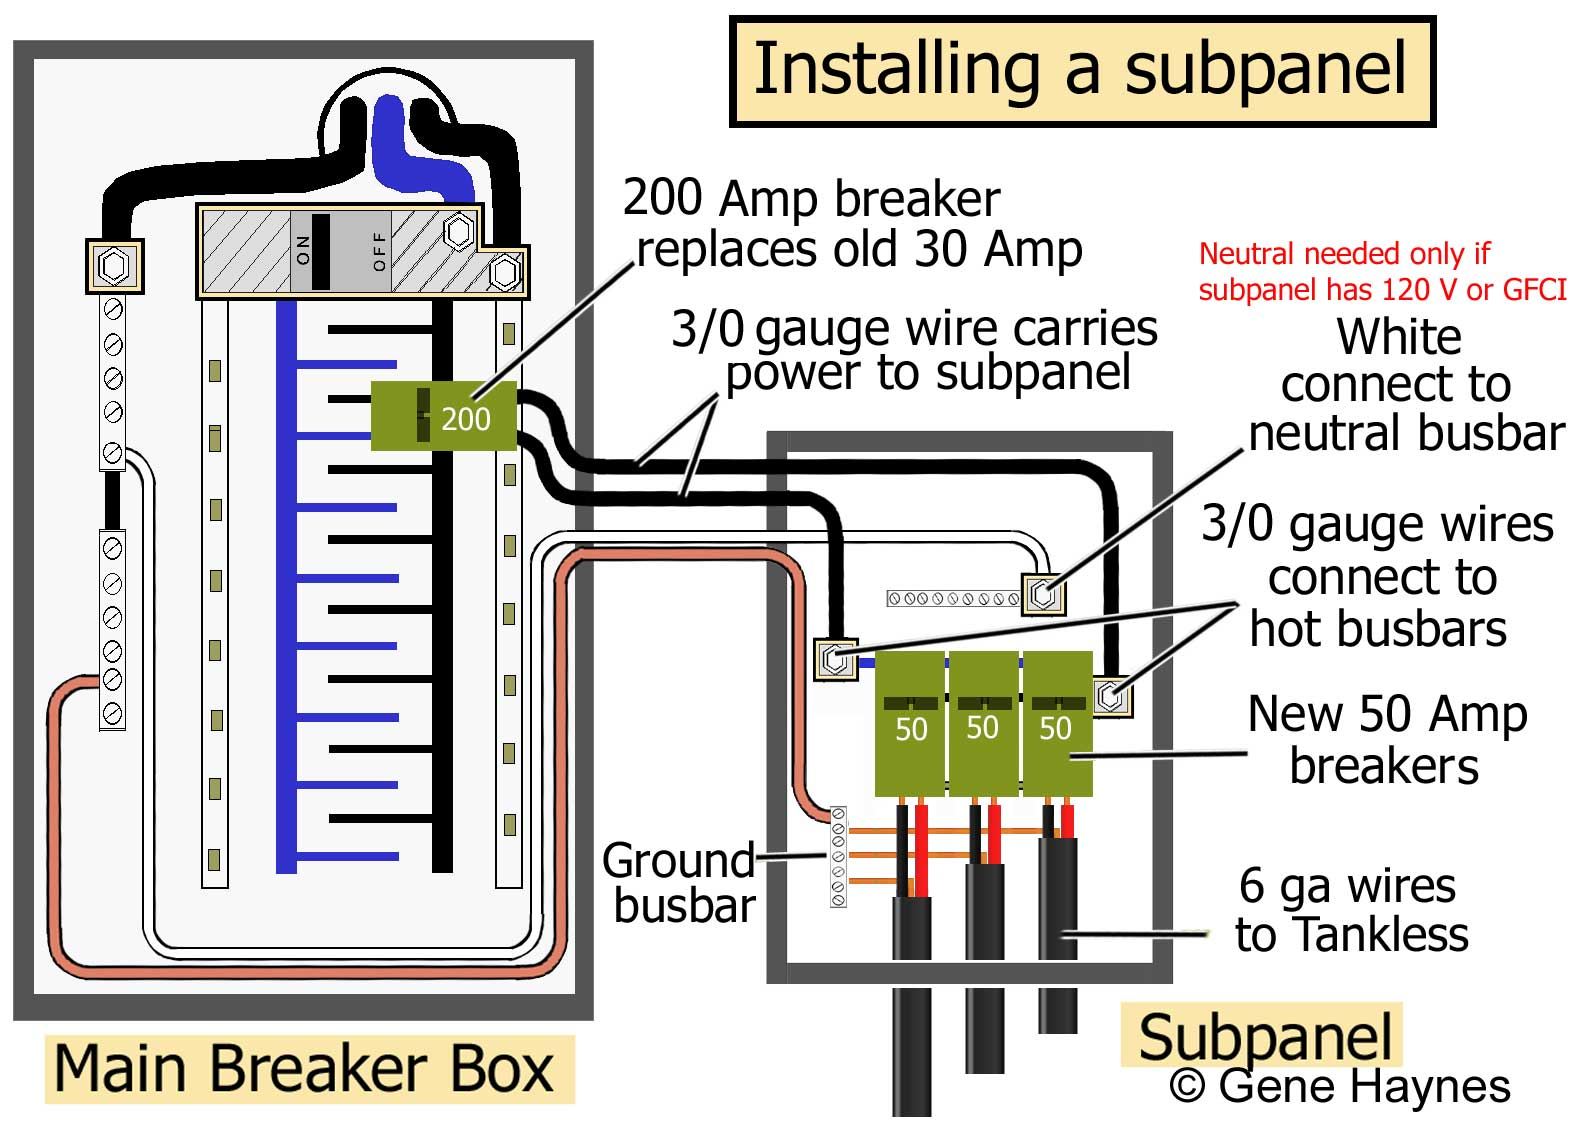 How to install a subpanel how to install main lug 150 amp breaker uses 20 wire neutral wire needed only if subpanel has 120volt breakers or gfci ground wire required for all installations if panel will keyboard keysfo Gallery